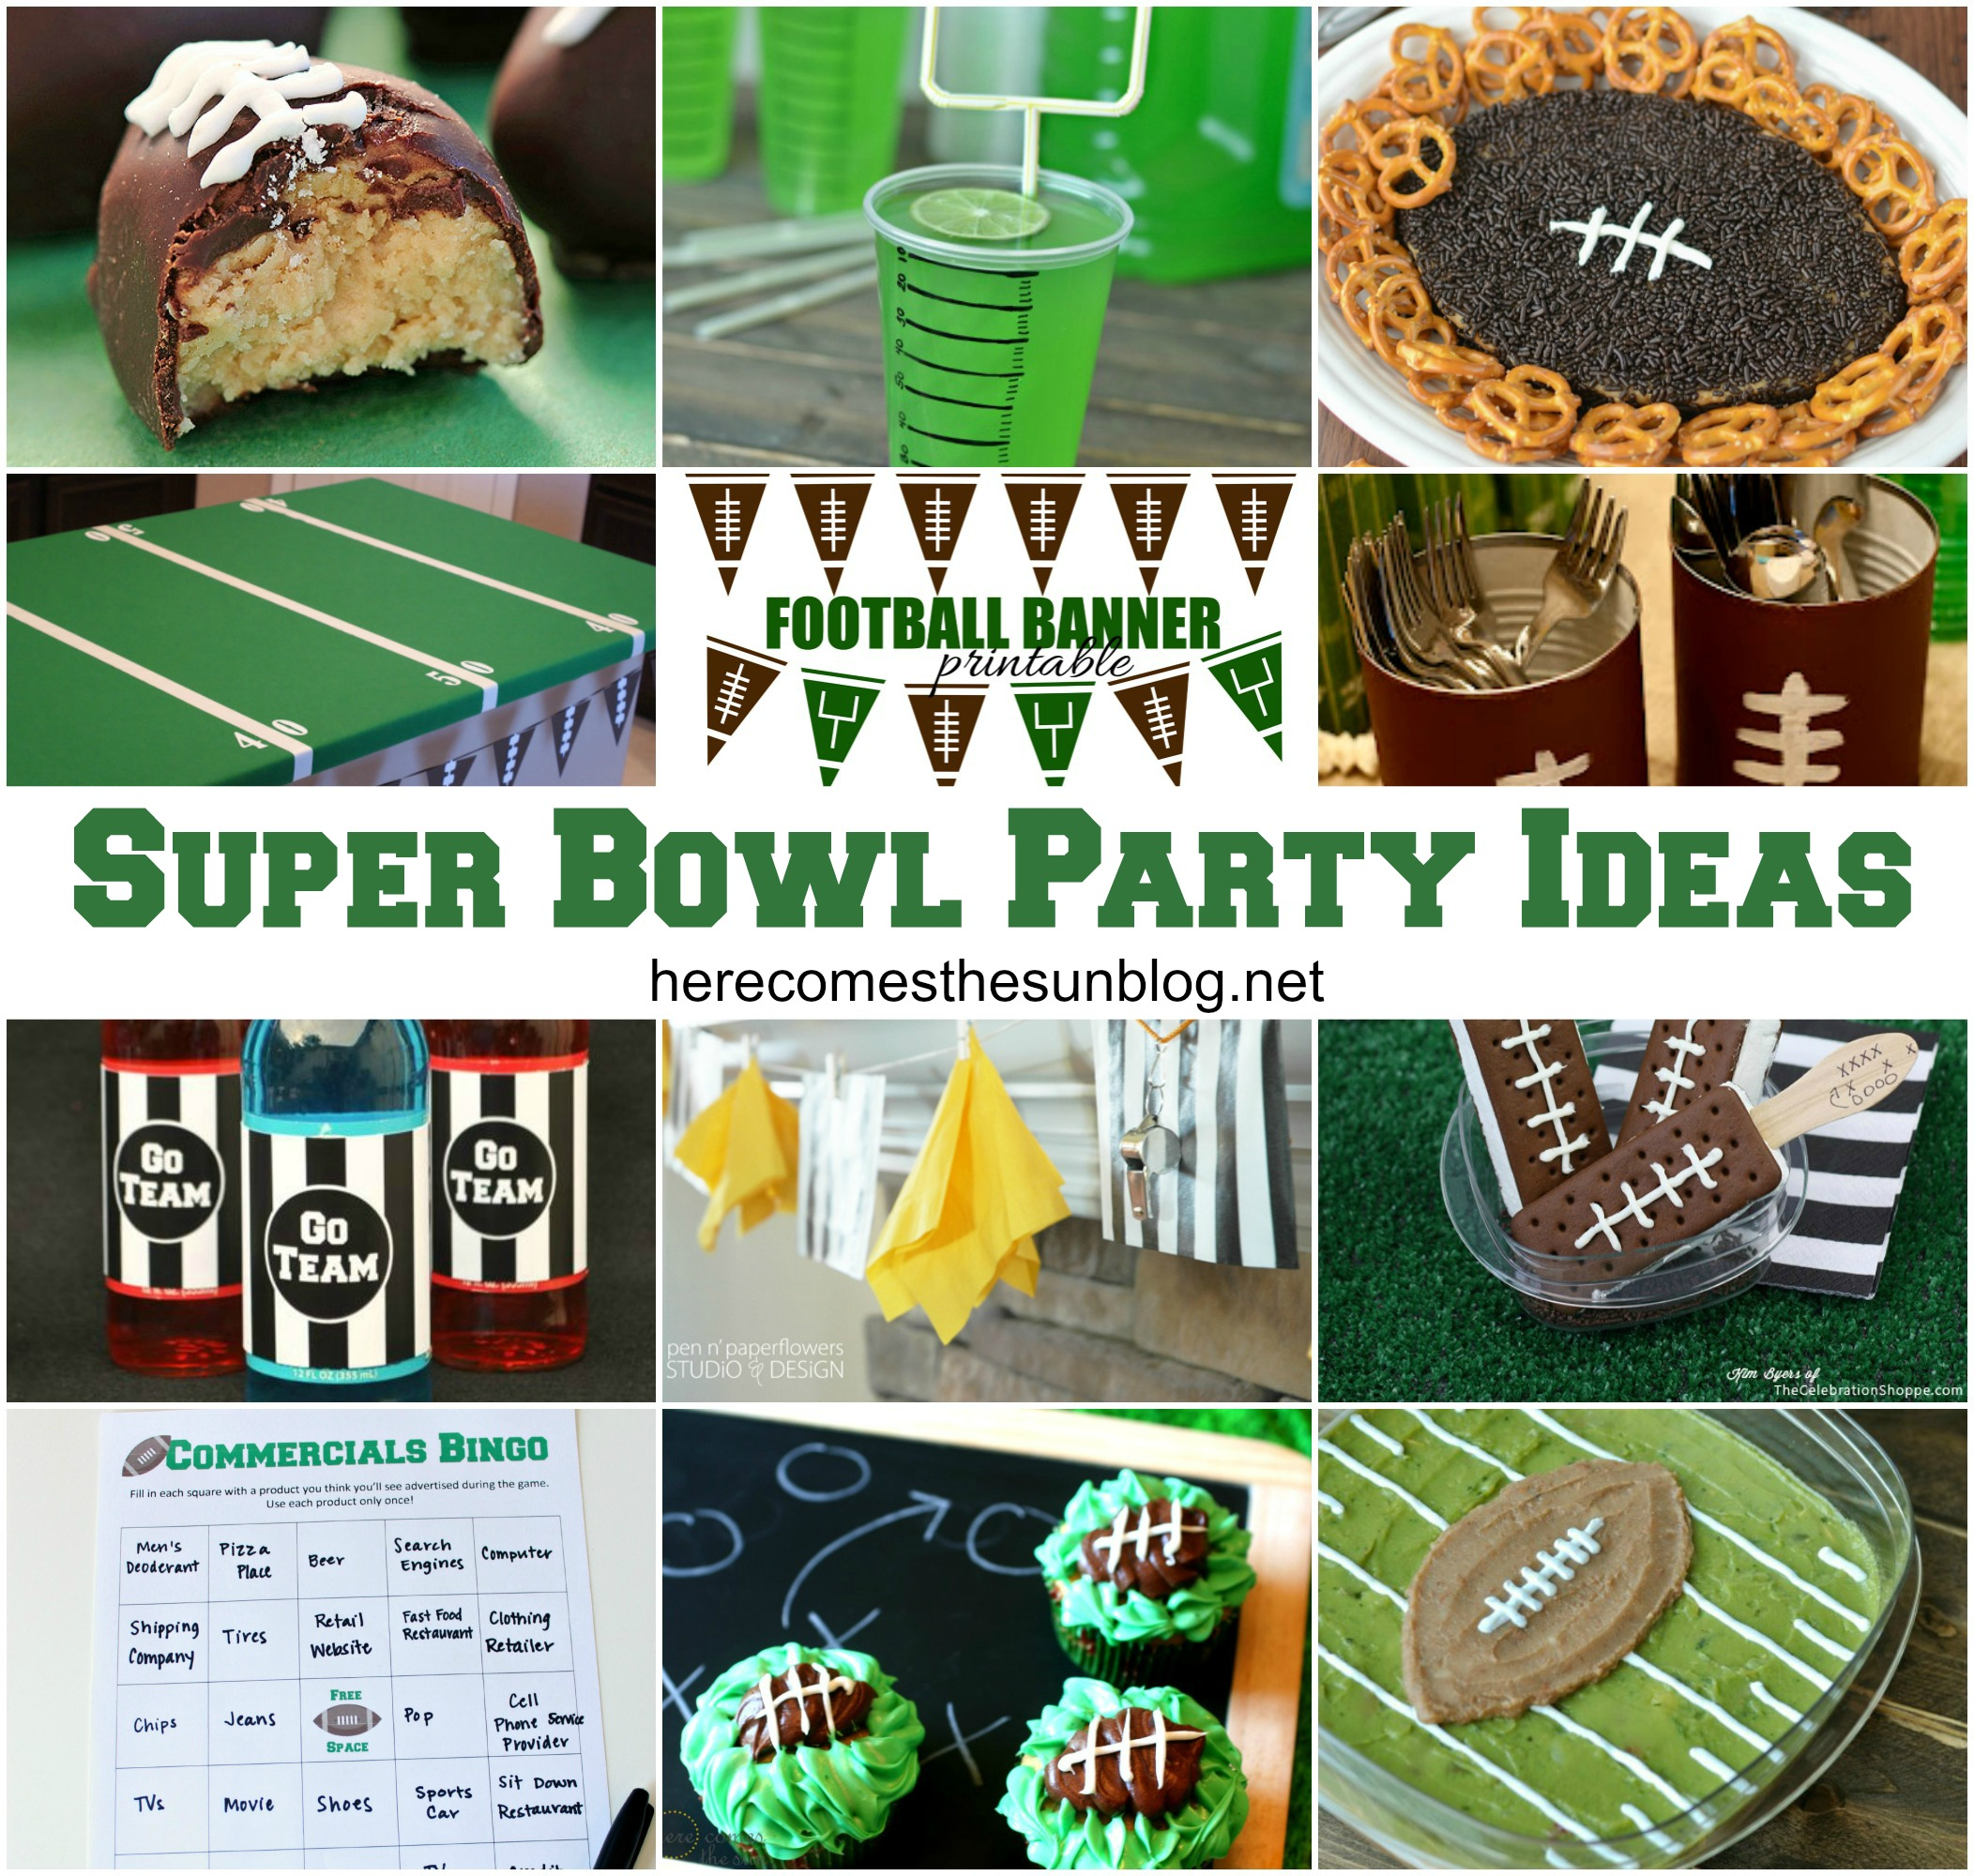 super bowl party ideas here comes the sun